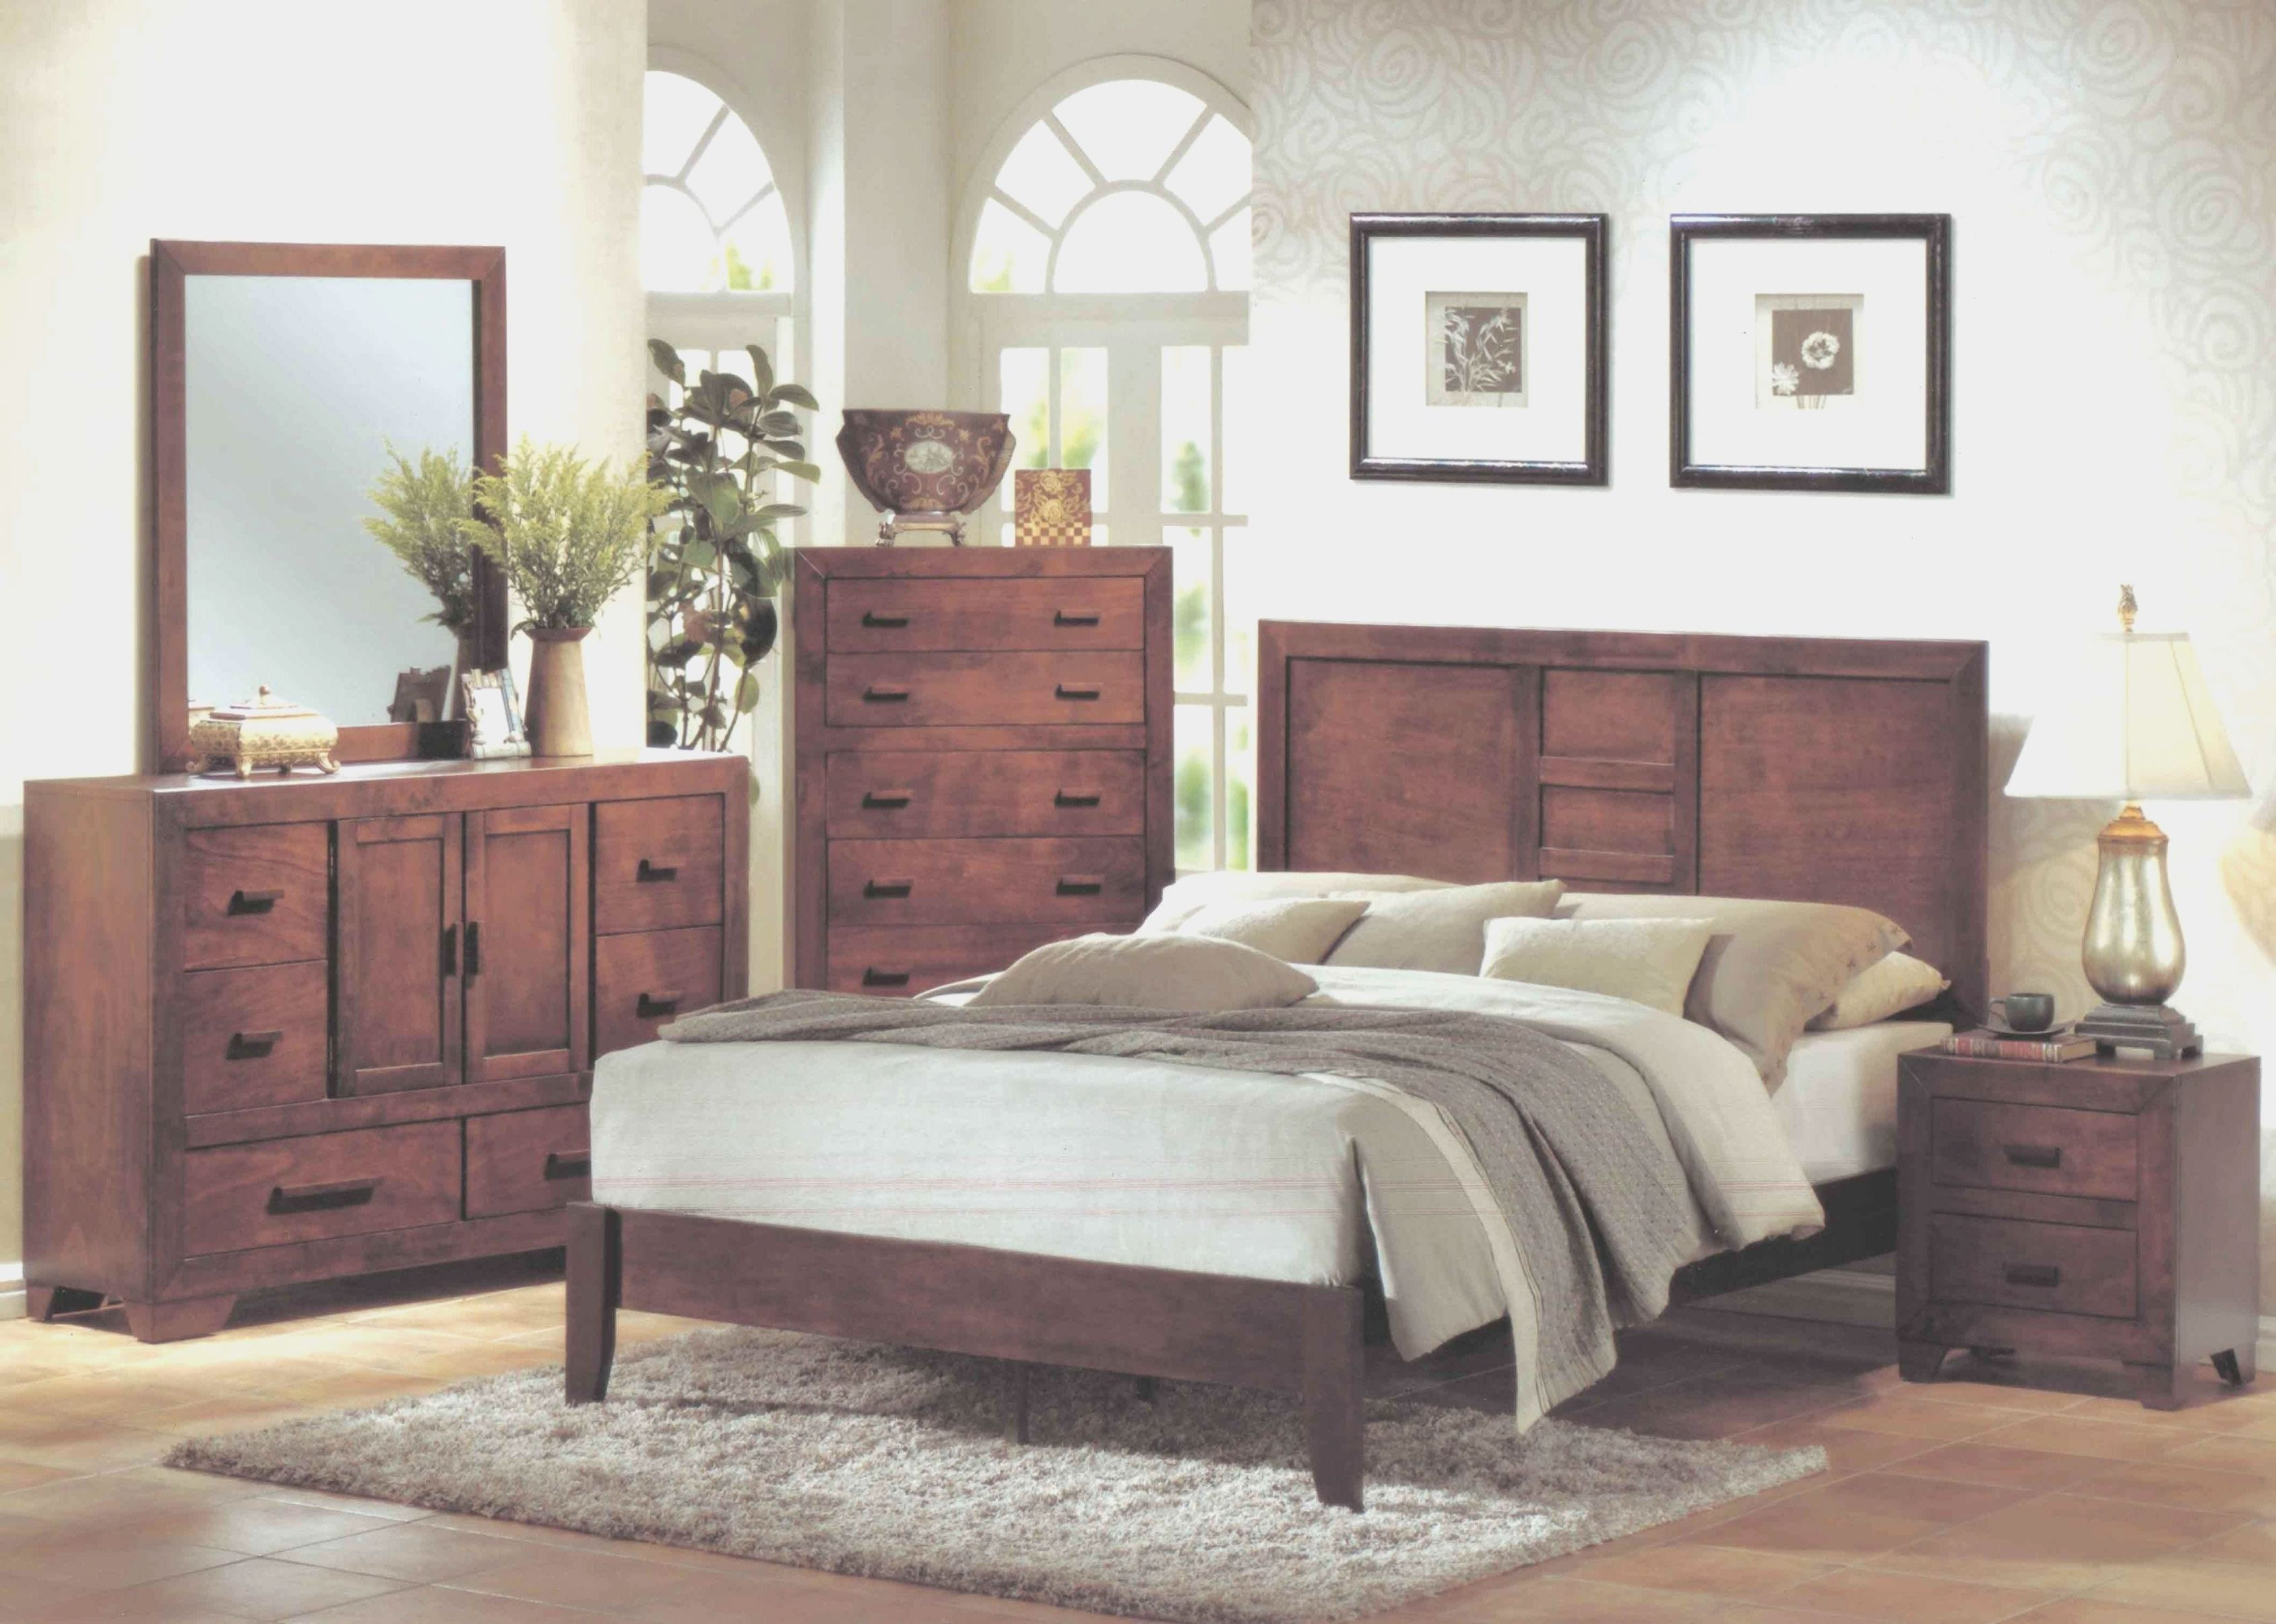 15 Gallery Queen Bedroom Sets Under 500 Trend Bedroom Decor with Luxury Queen Bedroom Furniture Sets Under 500